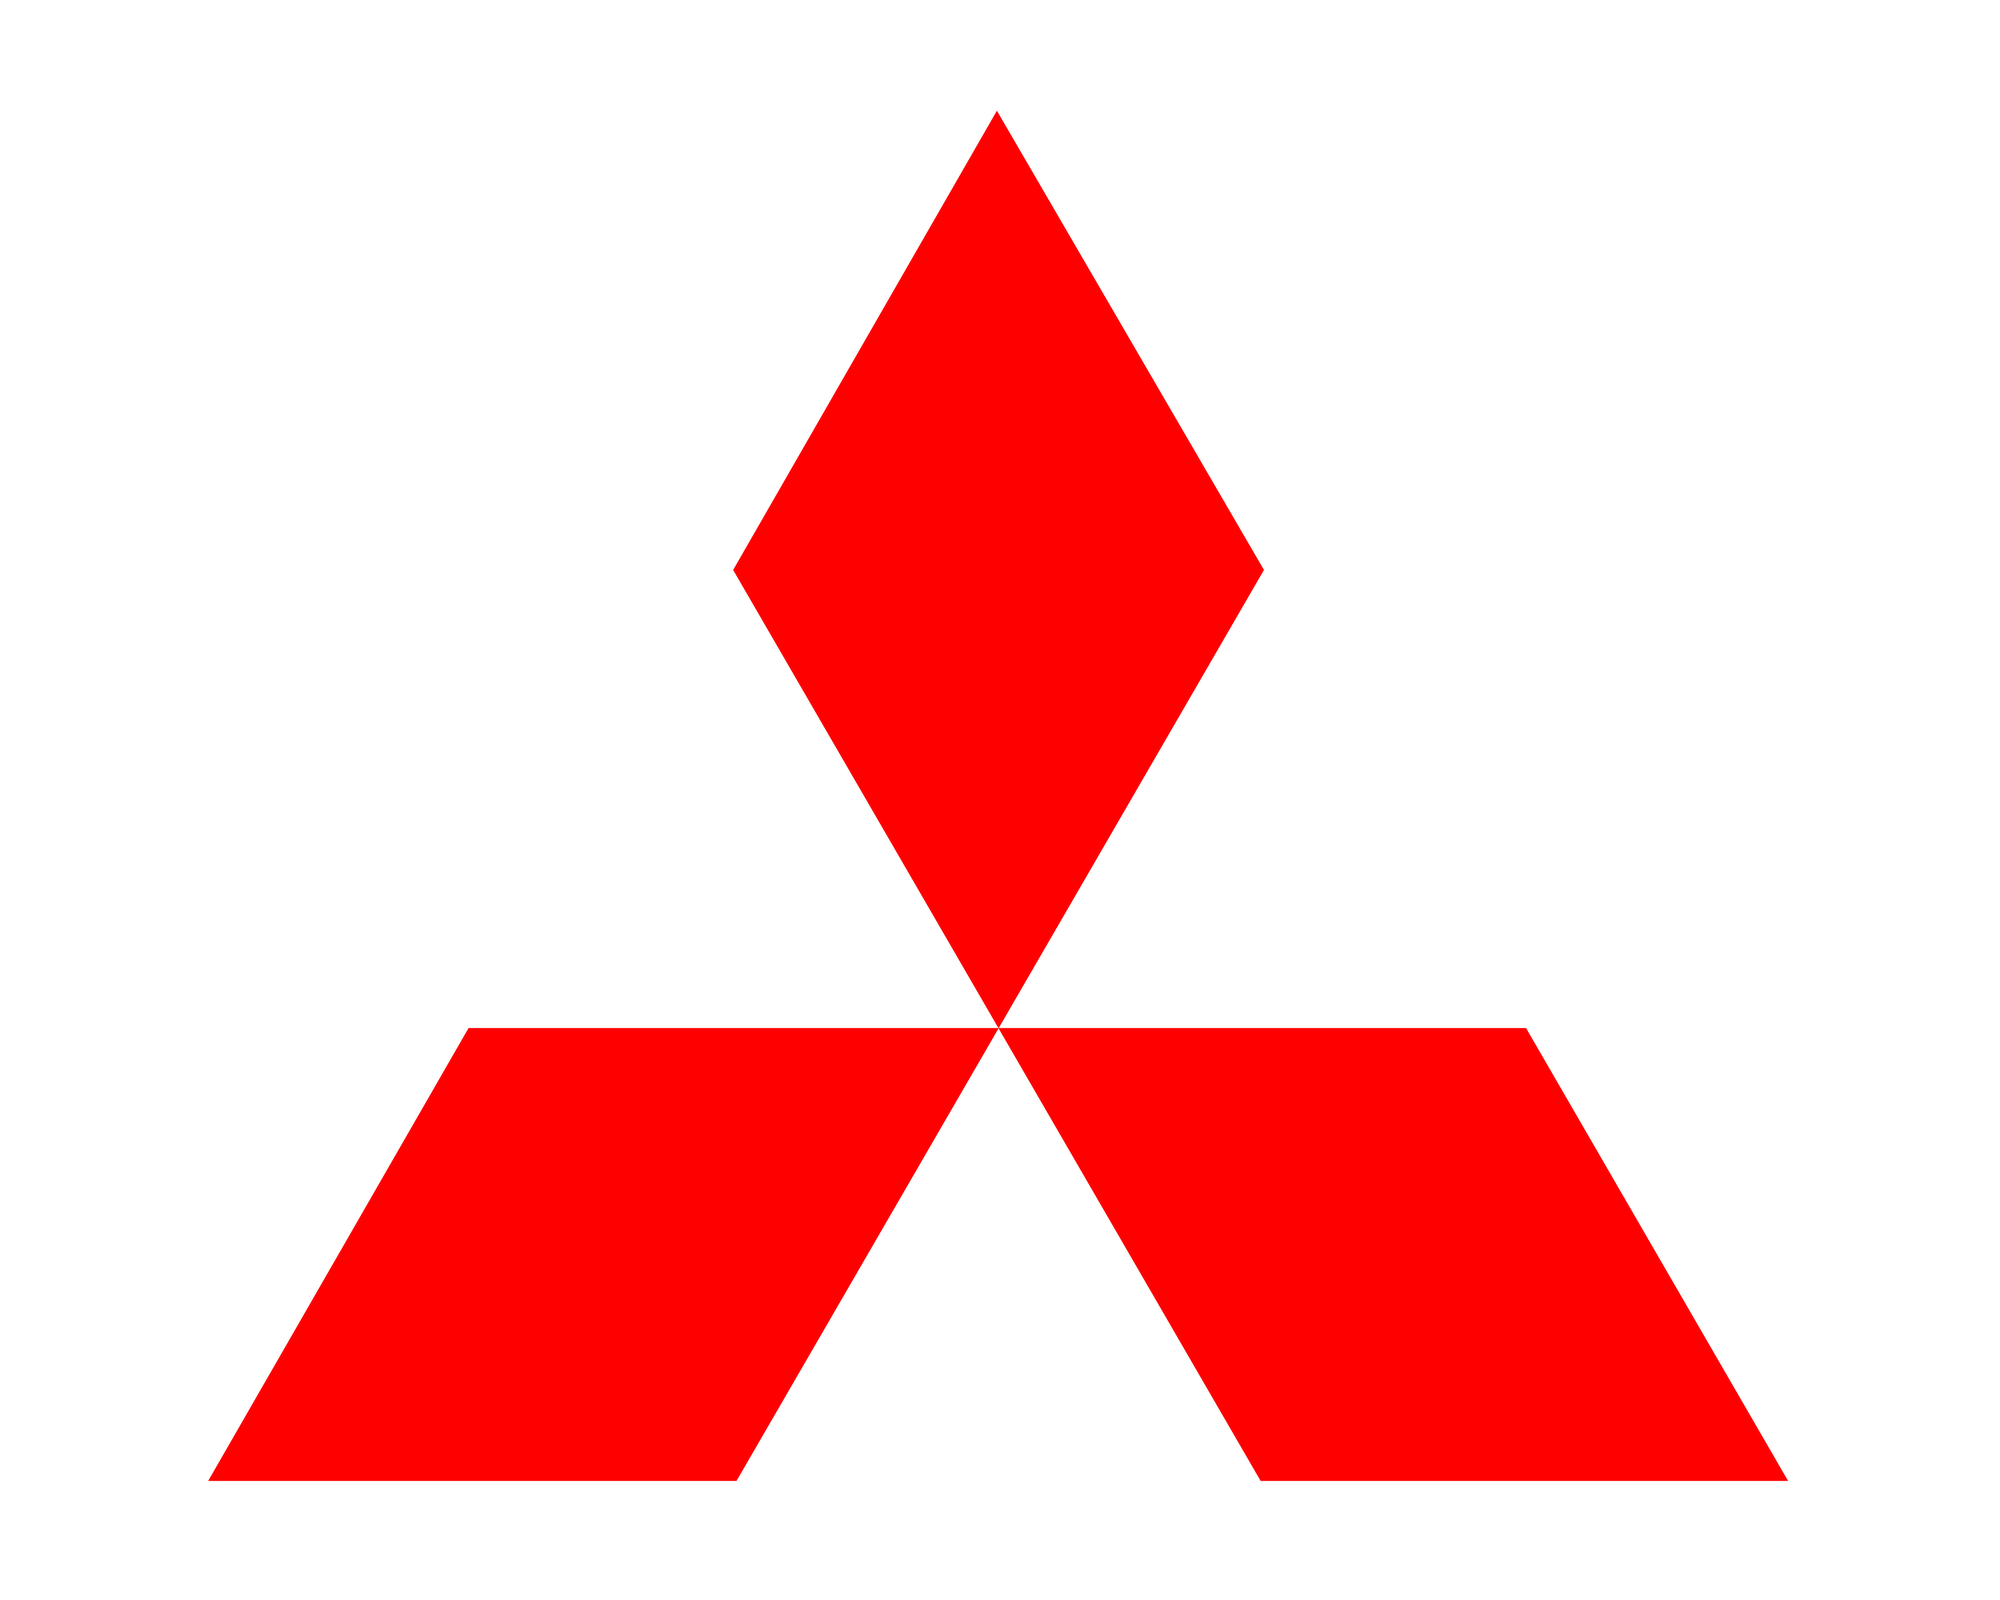 Mitsubishi Logo Mitsubishi Car Symbol Meaning And History Car